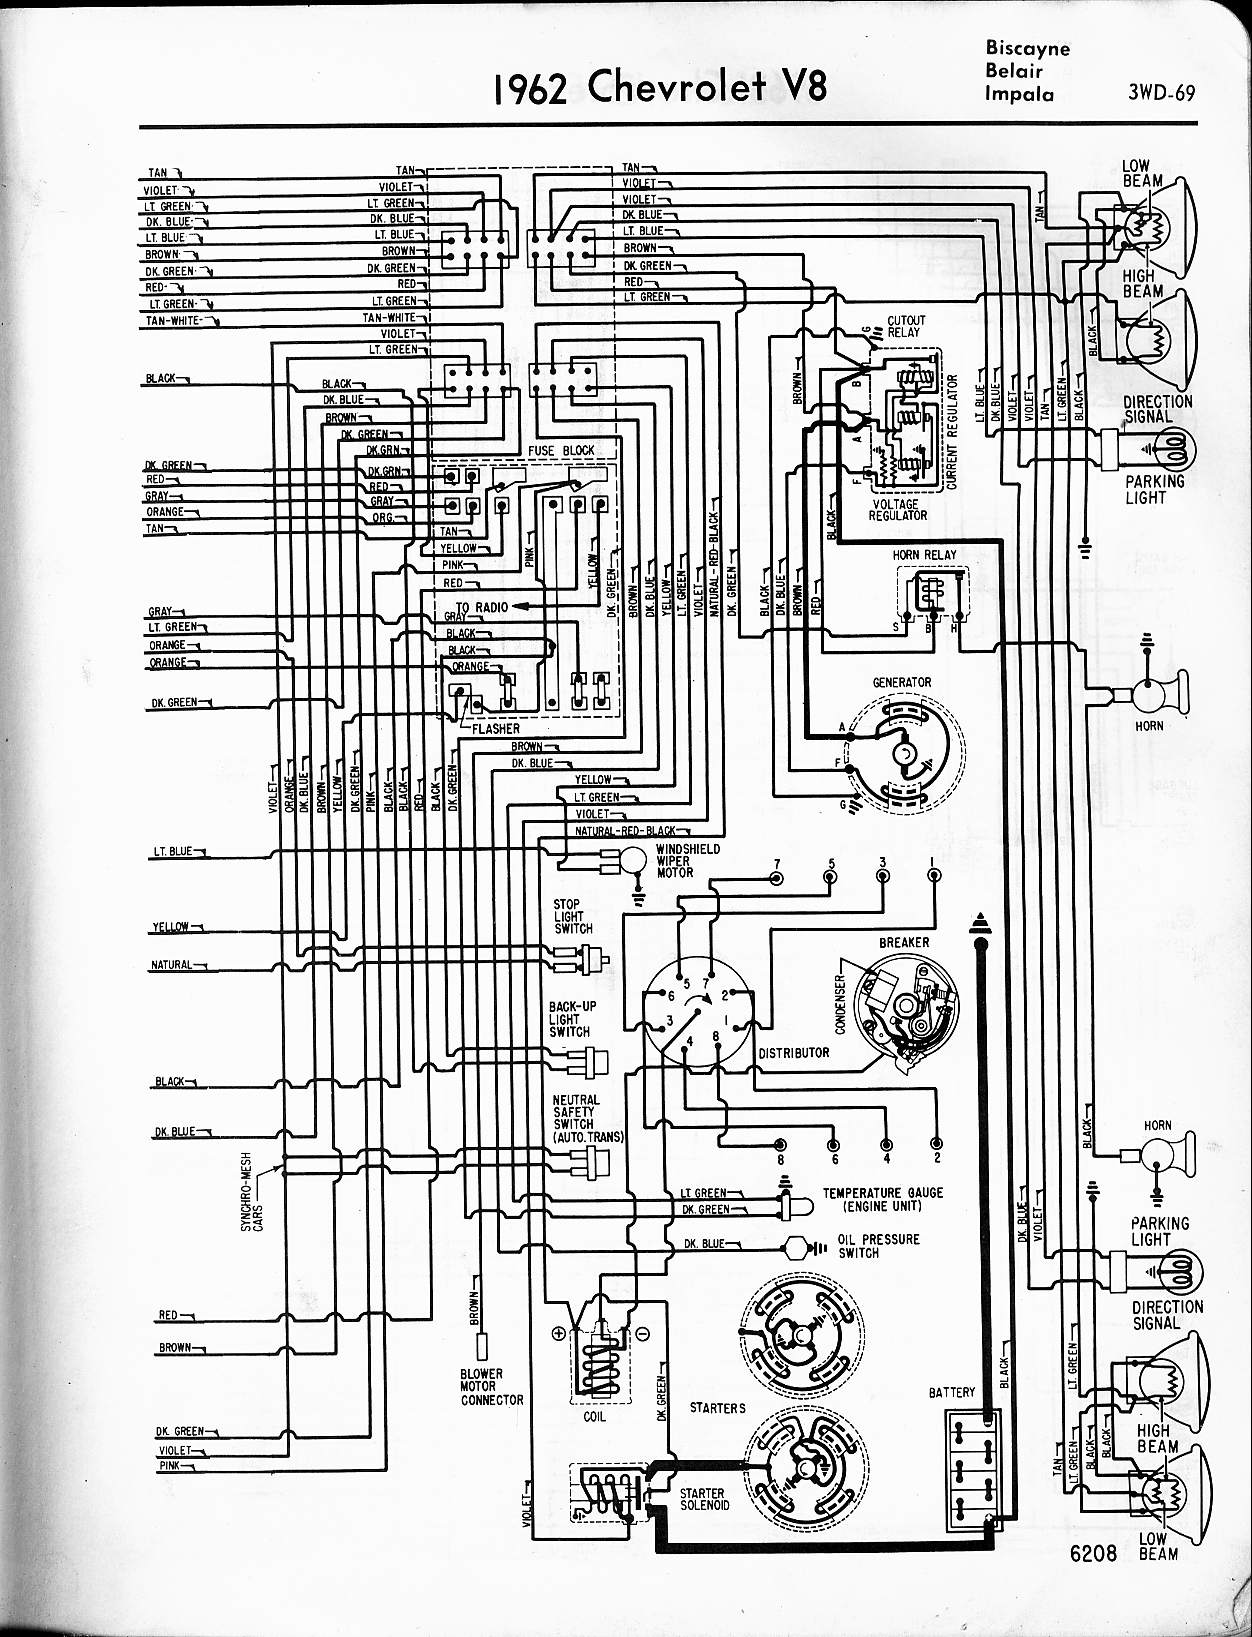 1982 Chevy Impala Engine Diagram Books Of Wiring Xvz13dt Ingniton Fuse Box Holder 57 65 Diagrams Rh Oldcarmanualproject Com